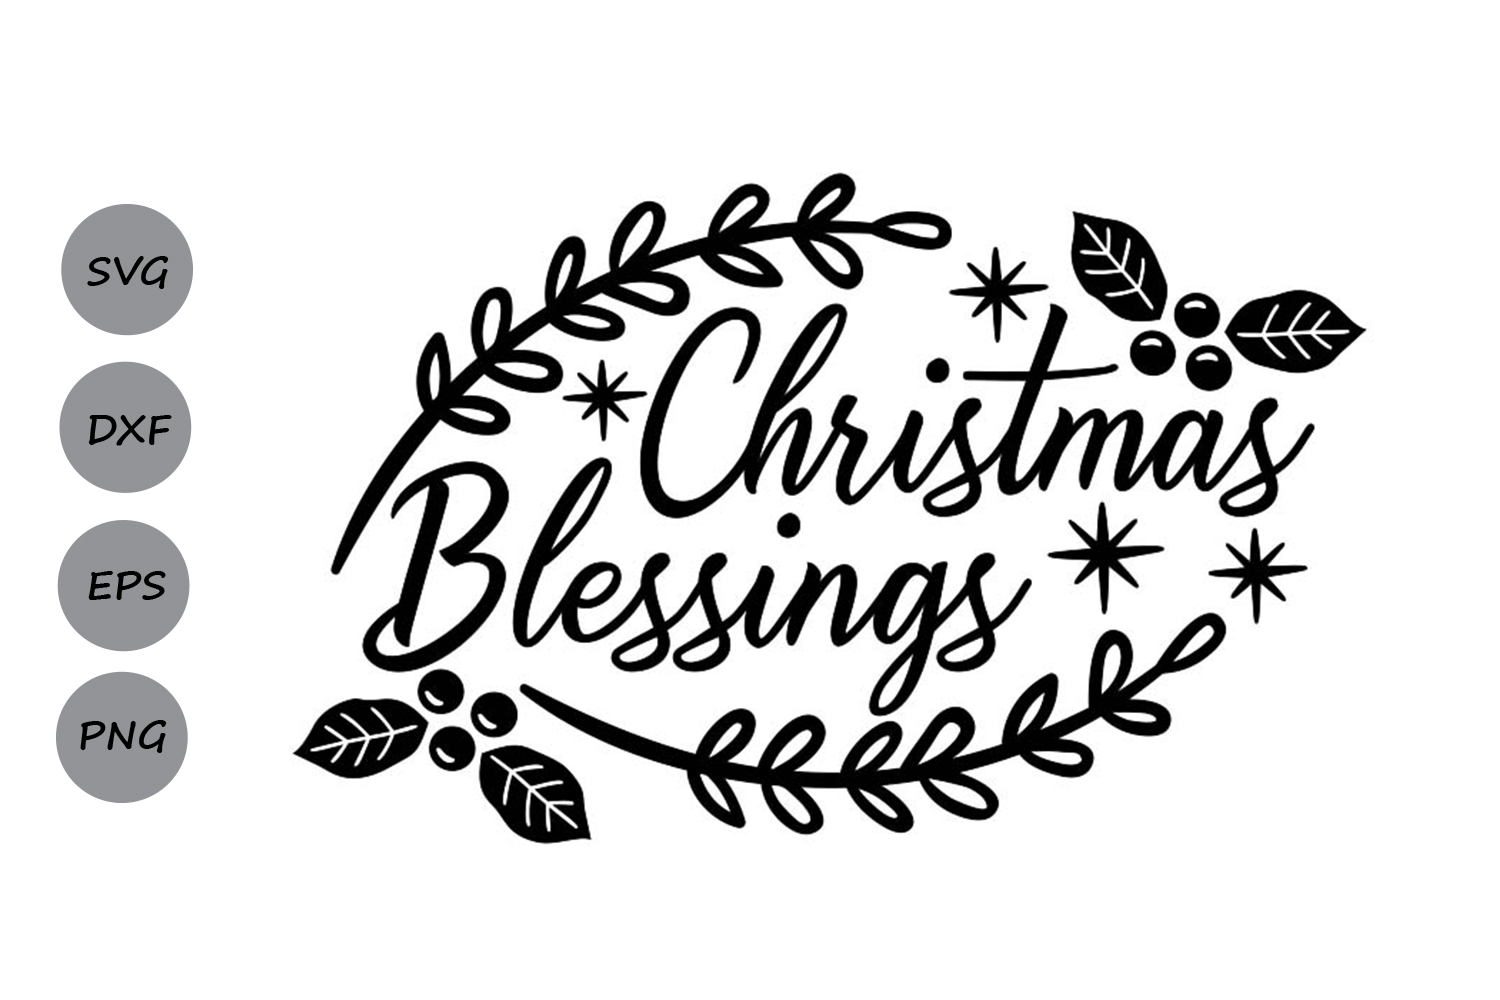 Christmas Blessings Svg, Christmas Svg, Holidays Svg. example image 1